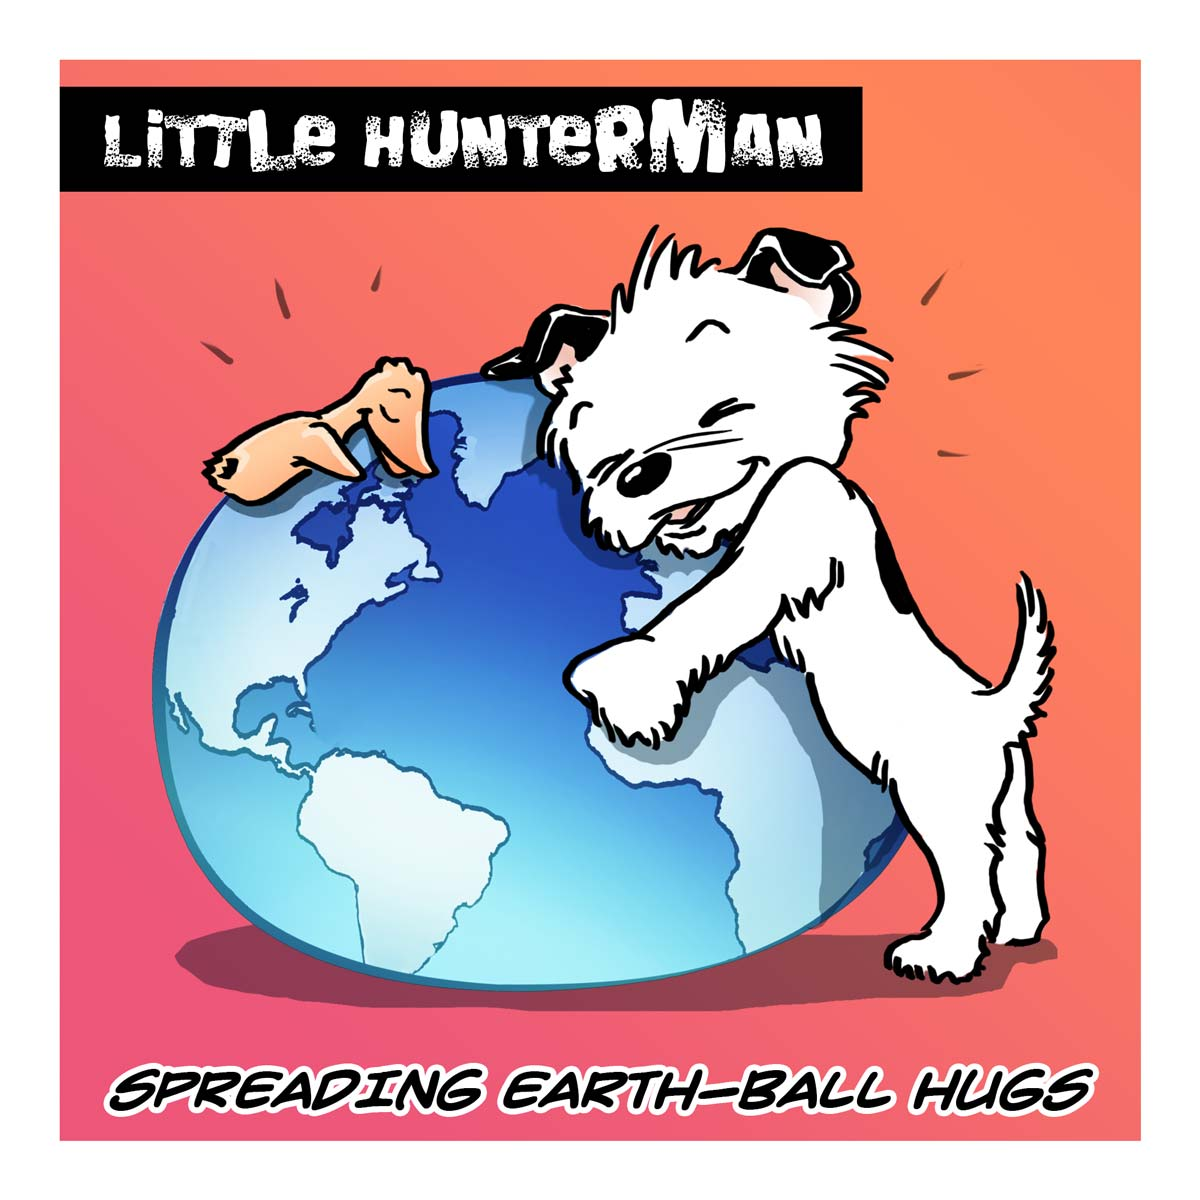 SPREADING EARTH-BALL HUGS